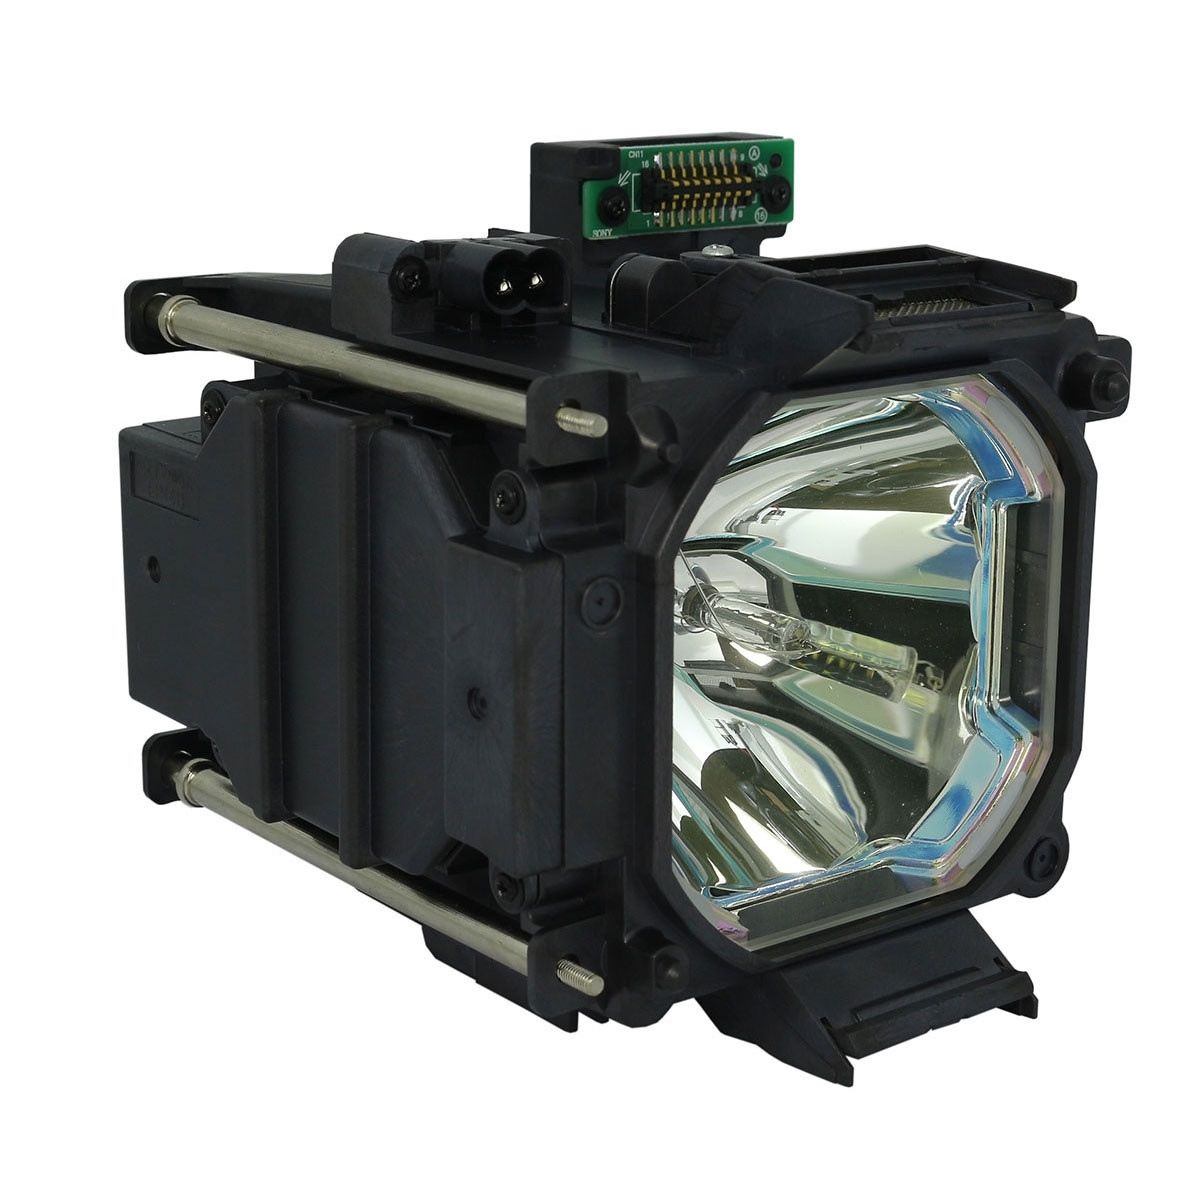 LMP-F330 LMPF330 for Sony VPL-FH500L VPL-FX500L VPL-F500H VPL-F700HL VPL-F700XL Projector Lamp Bulb with housingLMP-F330 LMPF330 for Sony VPL-FH500L VPL-FX500L VPL-F500H VPL-F700HL VPL-F700XL Projector Lamp Bulb with housing